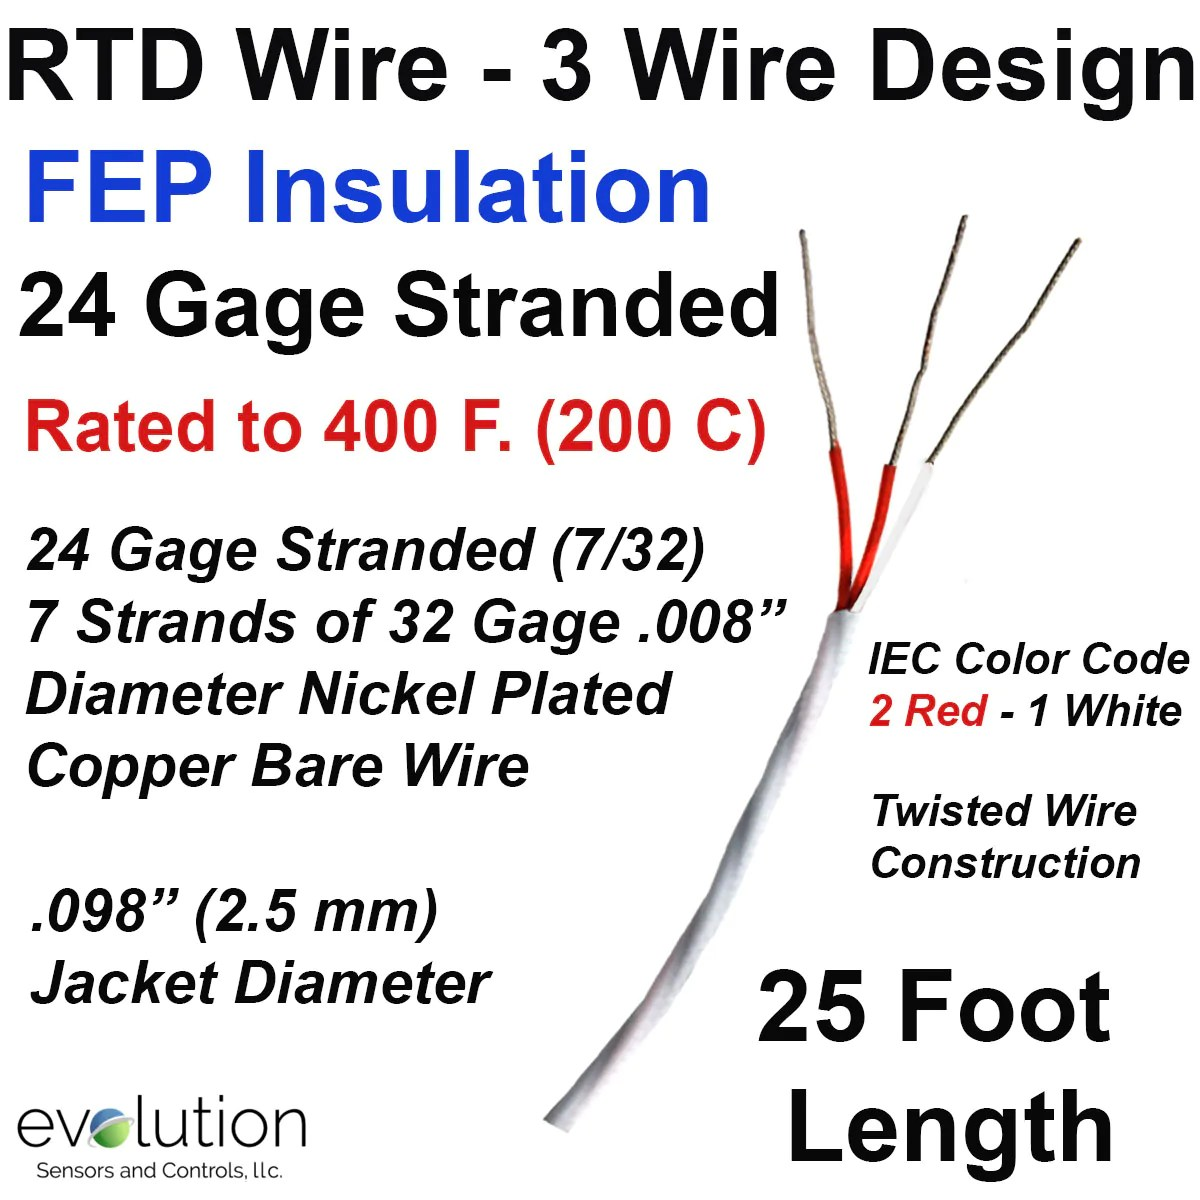 rtd wiring color code home wiring diagram rtd 3 wire color code rtd wire 3 wire [ 1200 x 1200 Pixel ]